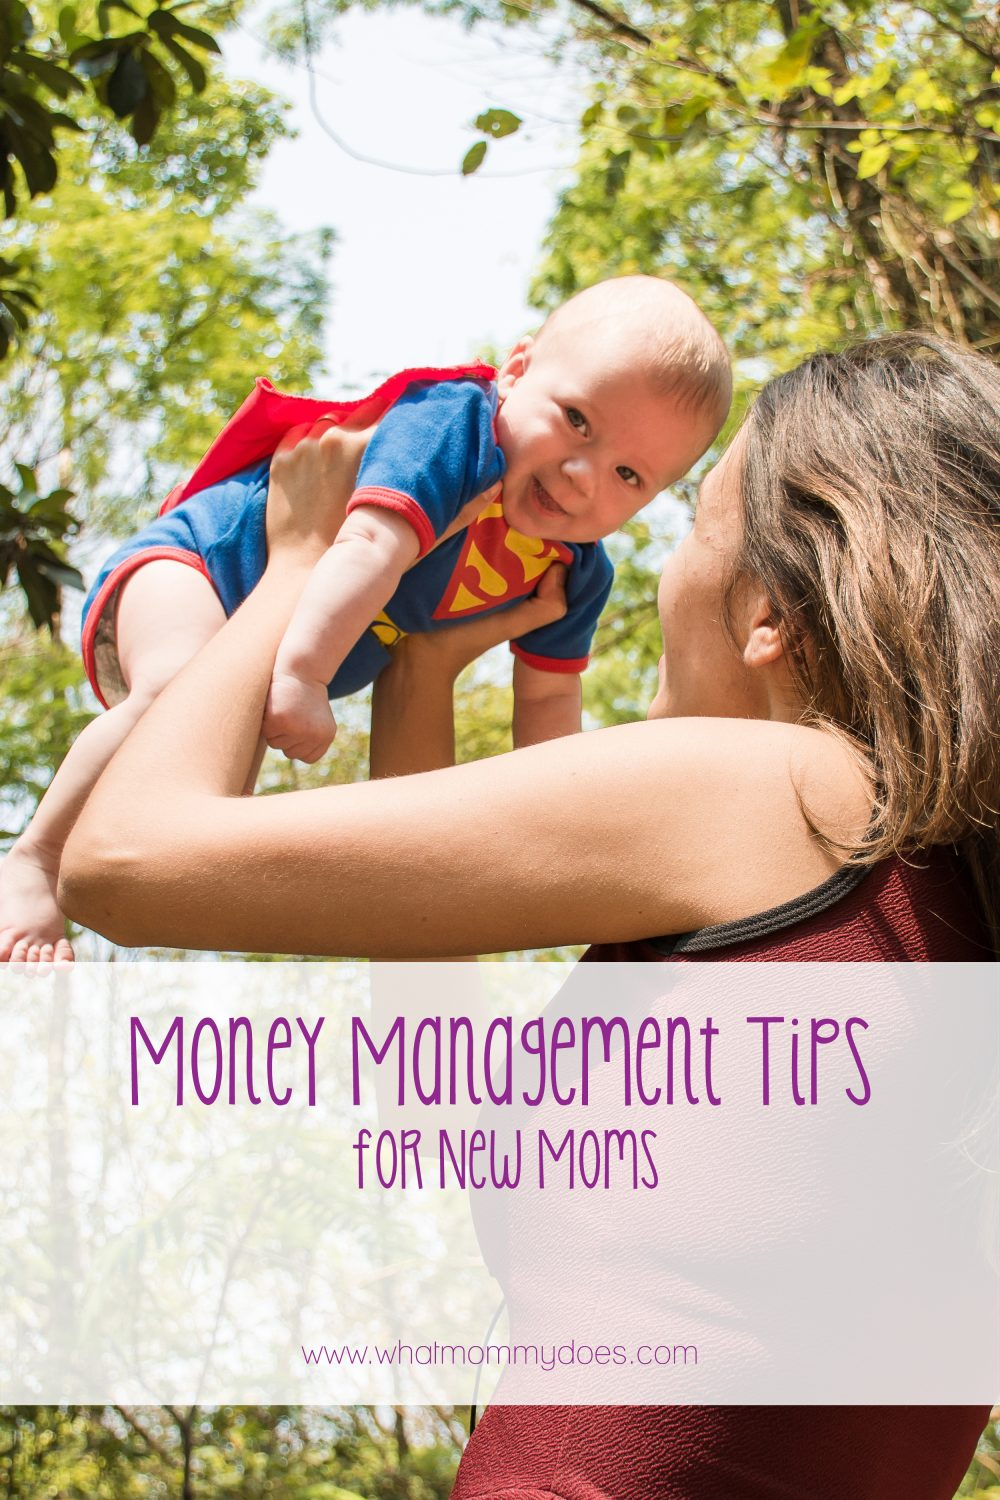 This should be REQUIRED READING for every new mom. When you have a baby, your financial world gets complicated. There are so many things you need to know! You have to save more money, make more money, plan for the future much more intentionally than before. Your new little baby depends on you! Learn how to manage financially from this girl's blog - she's a stay at home mom CPA so she knows what she's talking about! | saving money ideas, making money ideas, stay at home mom tips